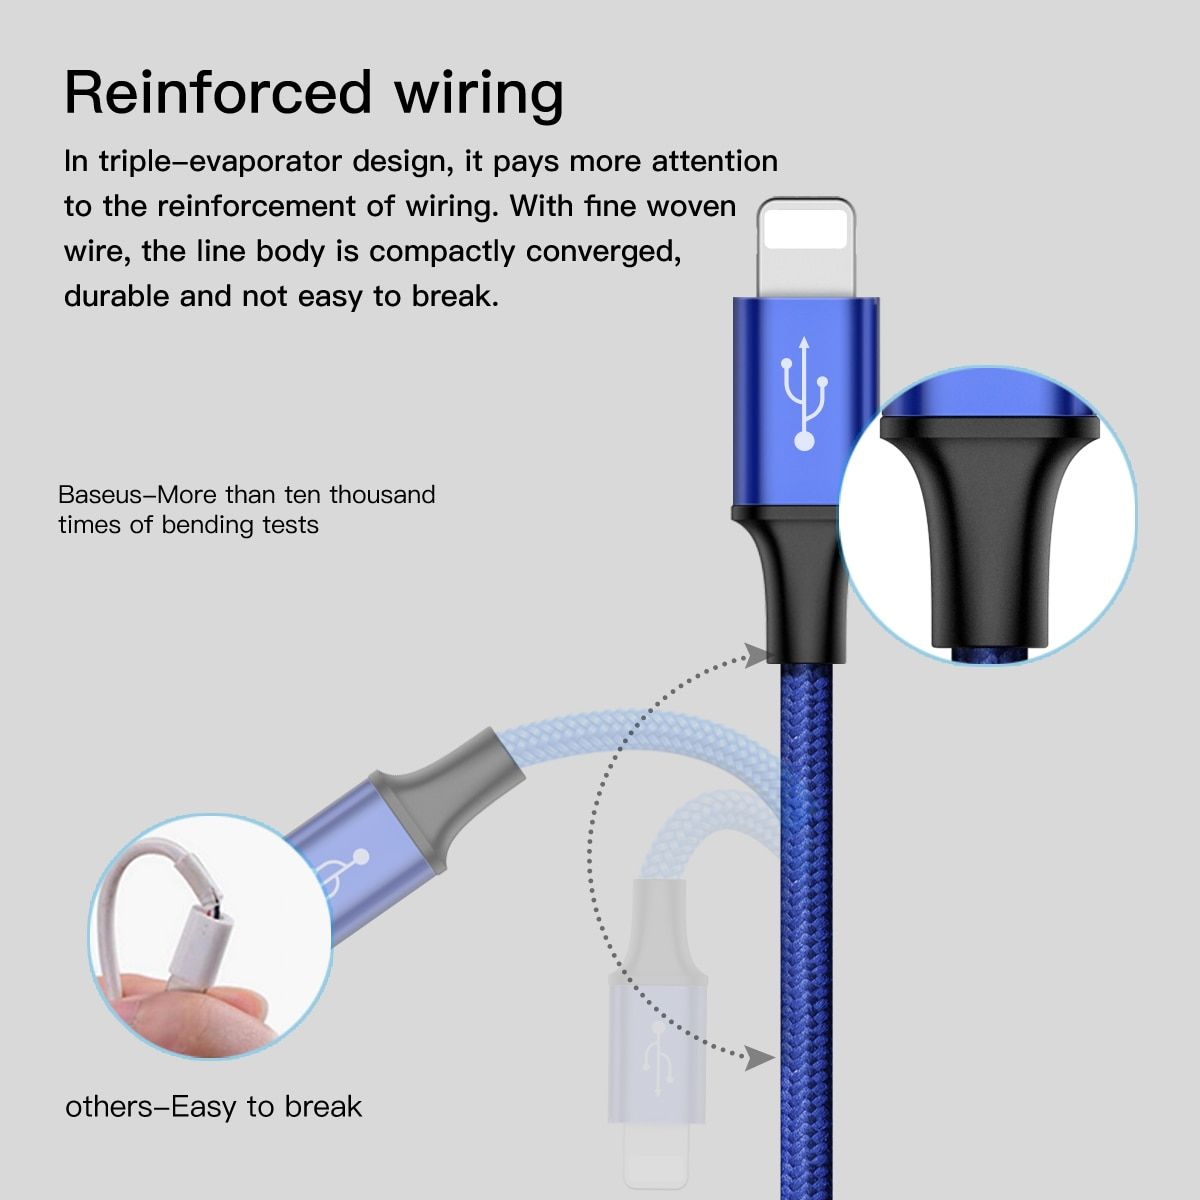 Baseus USB Cable For iPhone 7 6 6s 5 5s se Charging Charger Type C Micro USB Cable For Android 3 in 1 2 in 1 Mobile Phone Cable